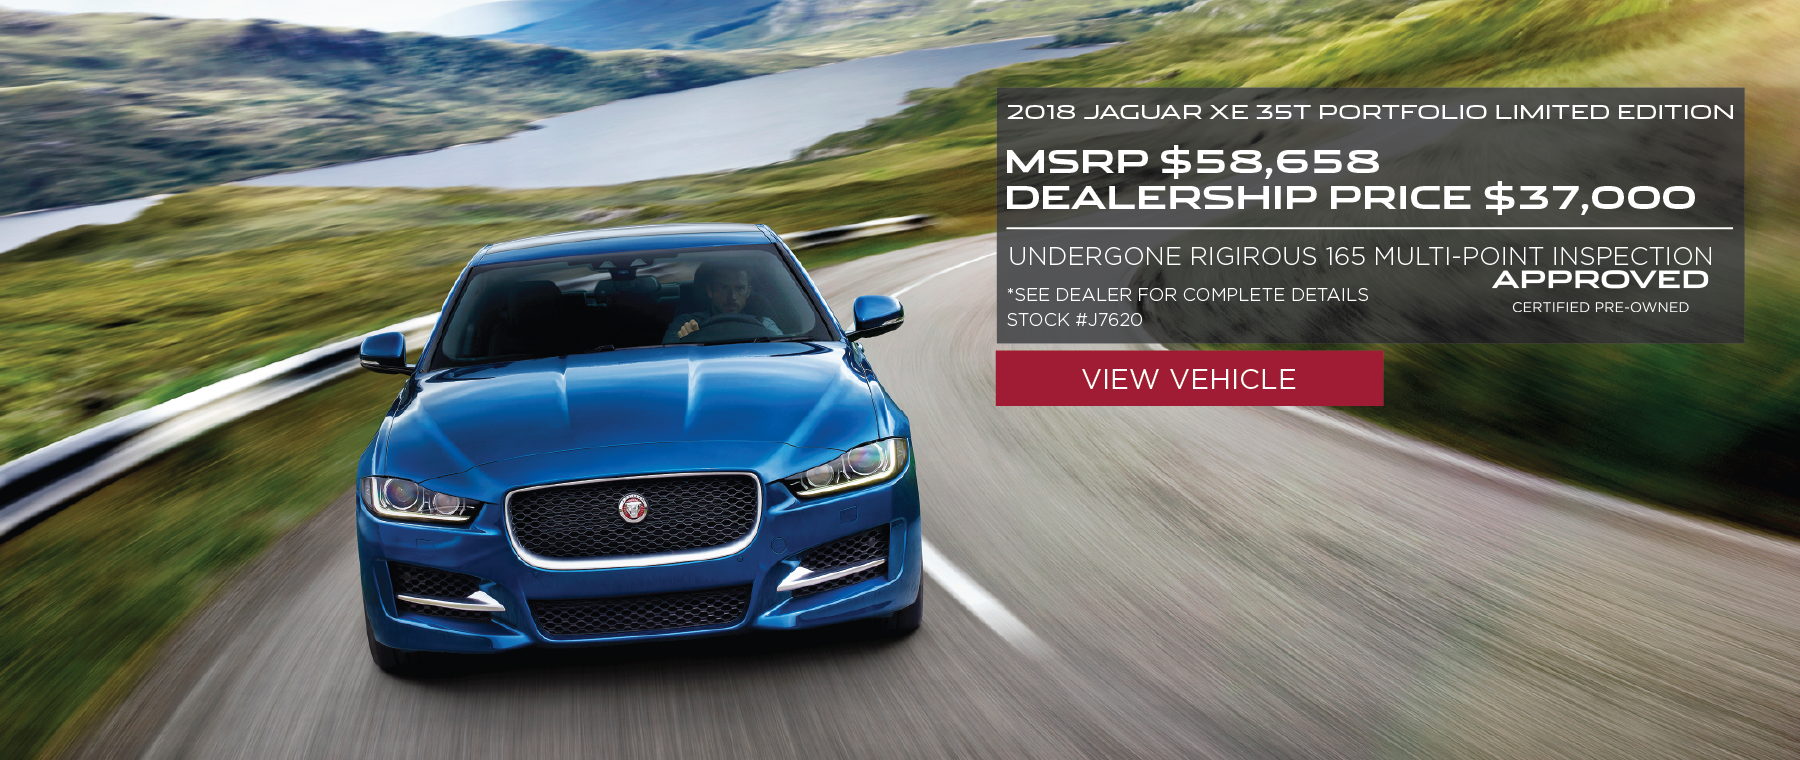 Blue 2018 Jaguar XE 35t Portfolio Limited Edition on road in front of lake. MSRP $58,658 Dealership price $37,000. Stock #J7620 Click to view inventory. *See dealer for complete details. Offer Expires 2/29/2020.